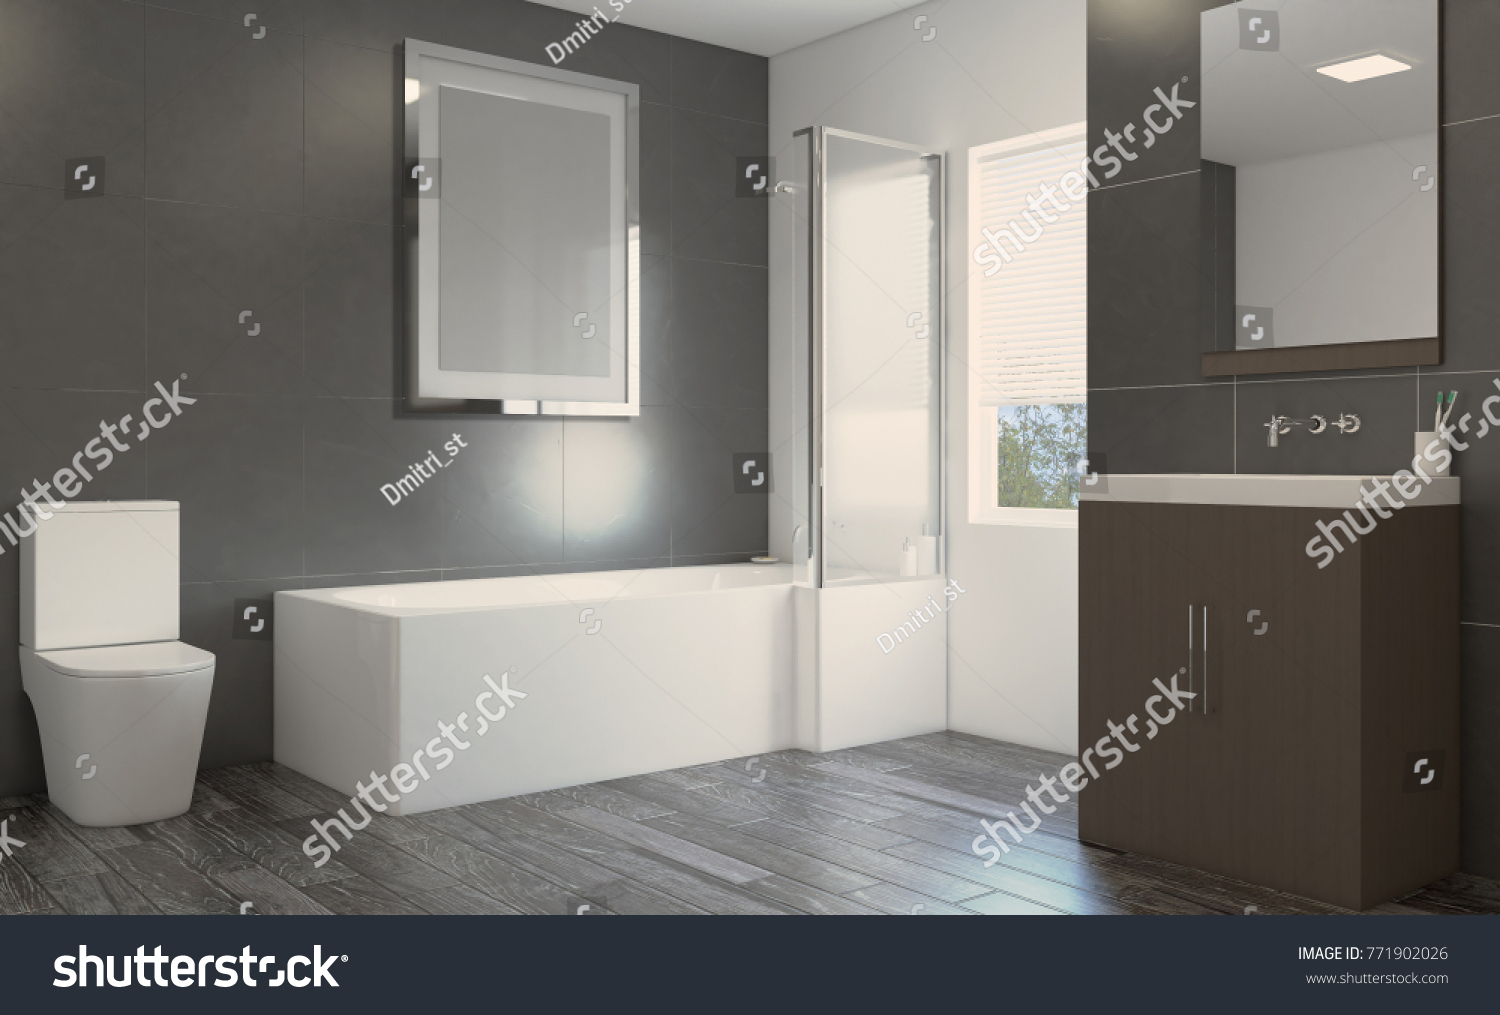 Scandinavian Bathroom Classic Vintage Interior Design 3D Rendering Empty Picture